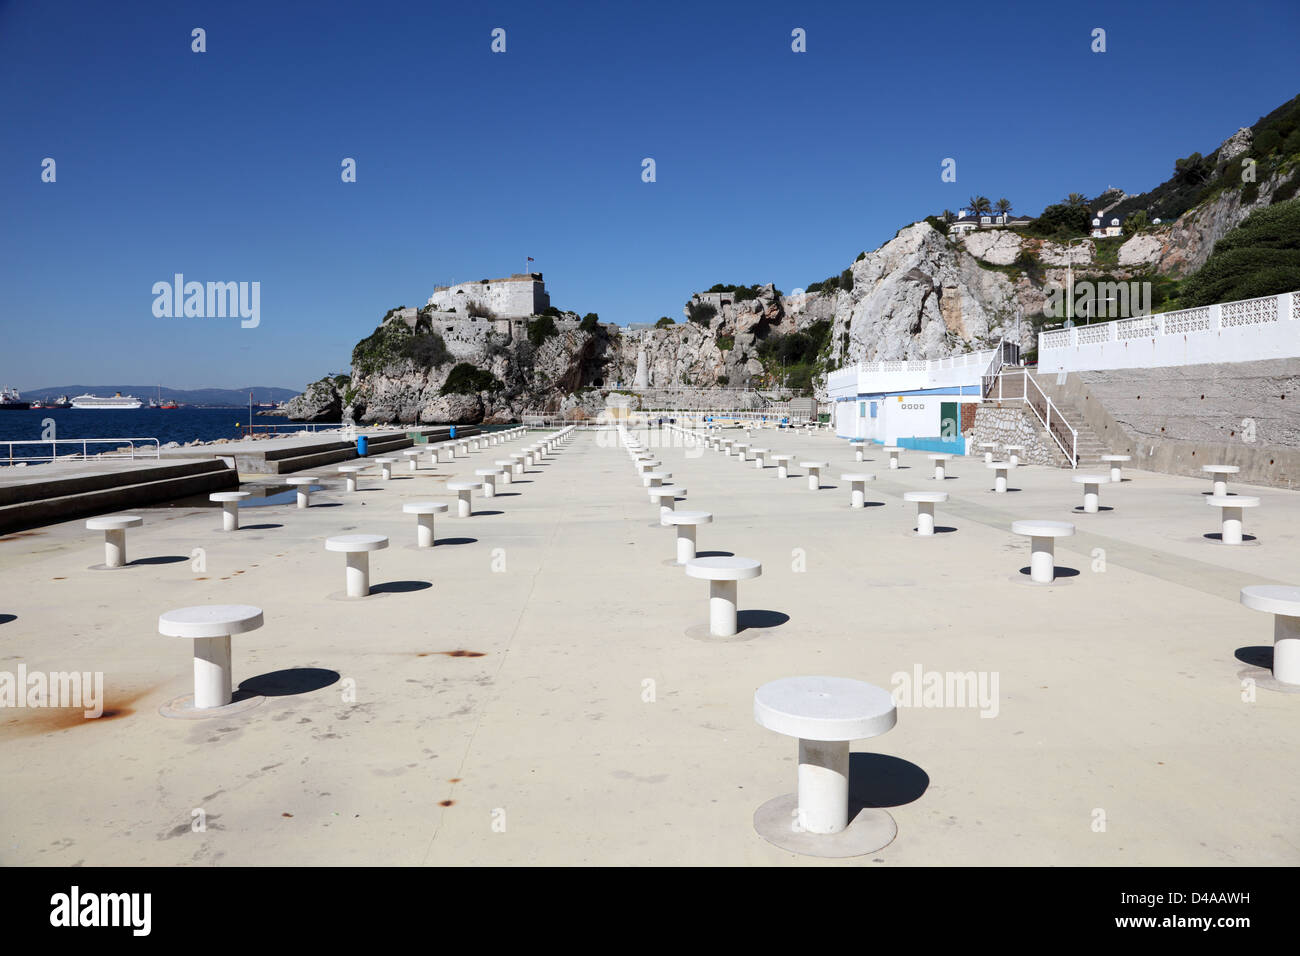 Picnic tables at the recreational area of the Keys Promenade in Gibraltar - Stock Image